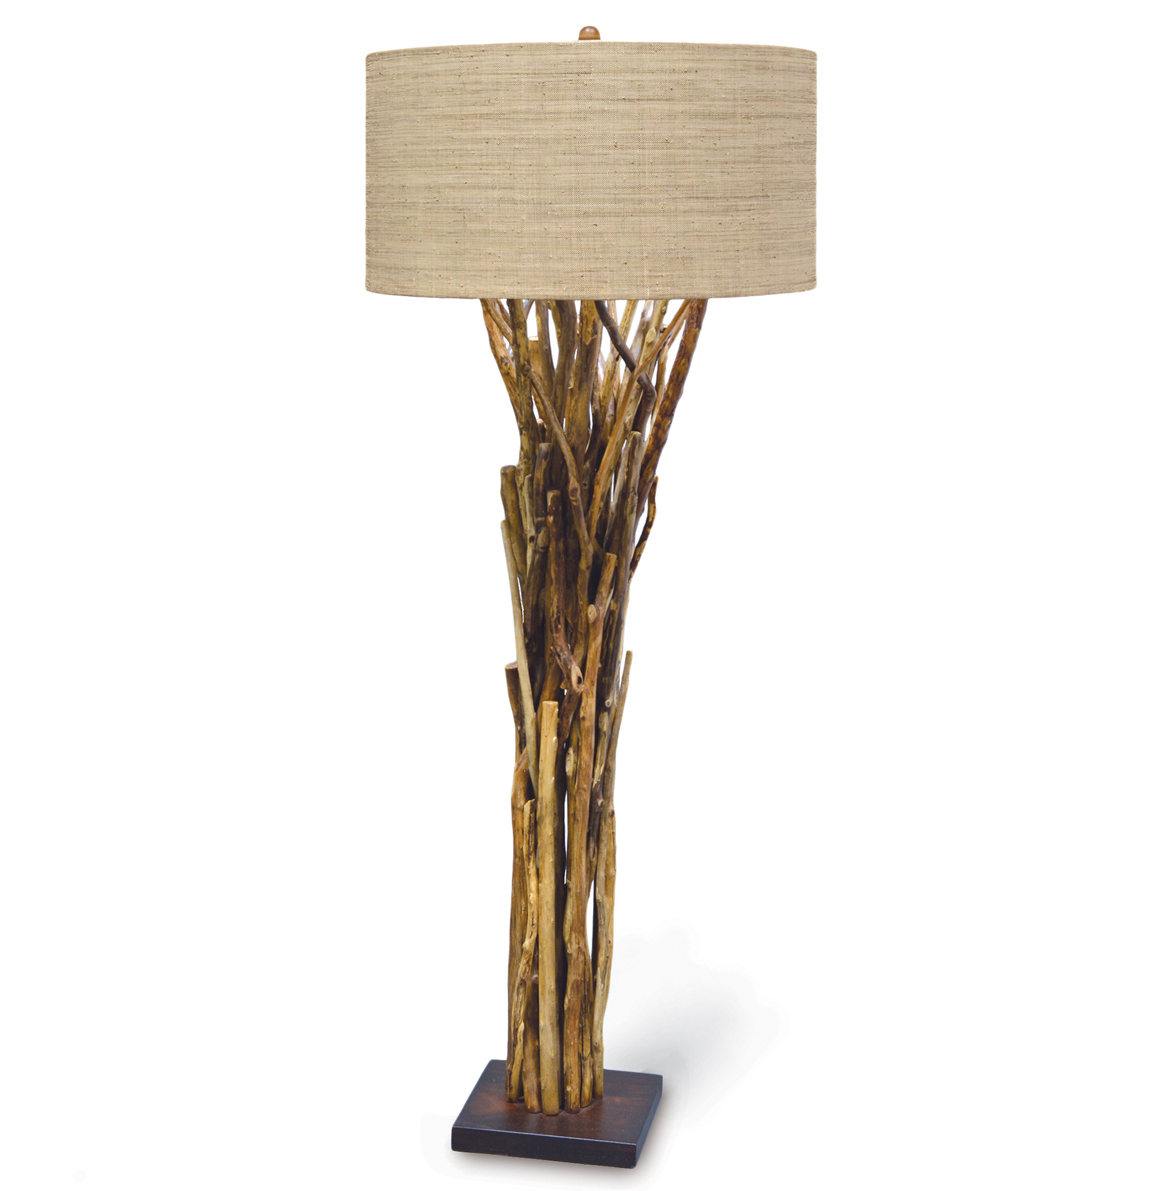 Superbe Umber Rustic Lodge Bundled Branches Floor Lamp S Transitional Floor